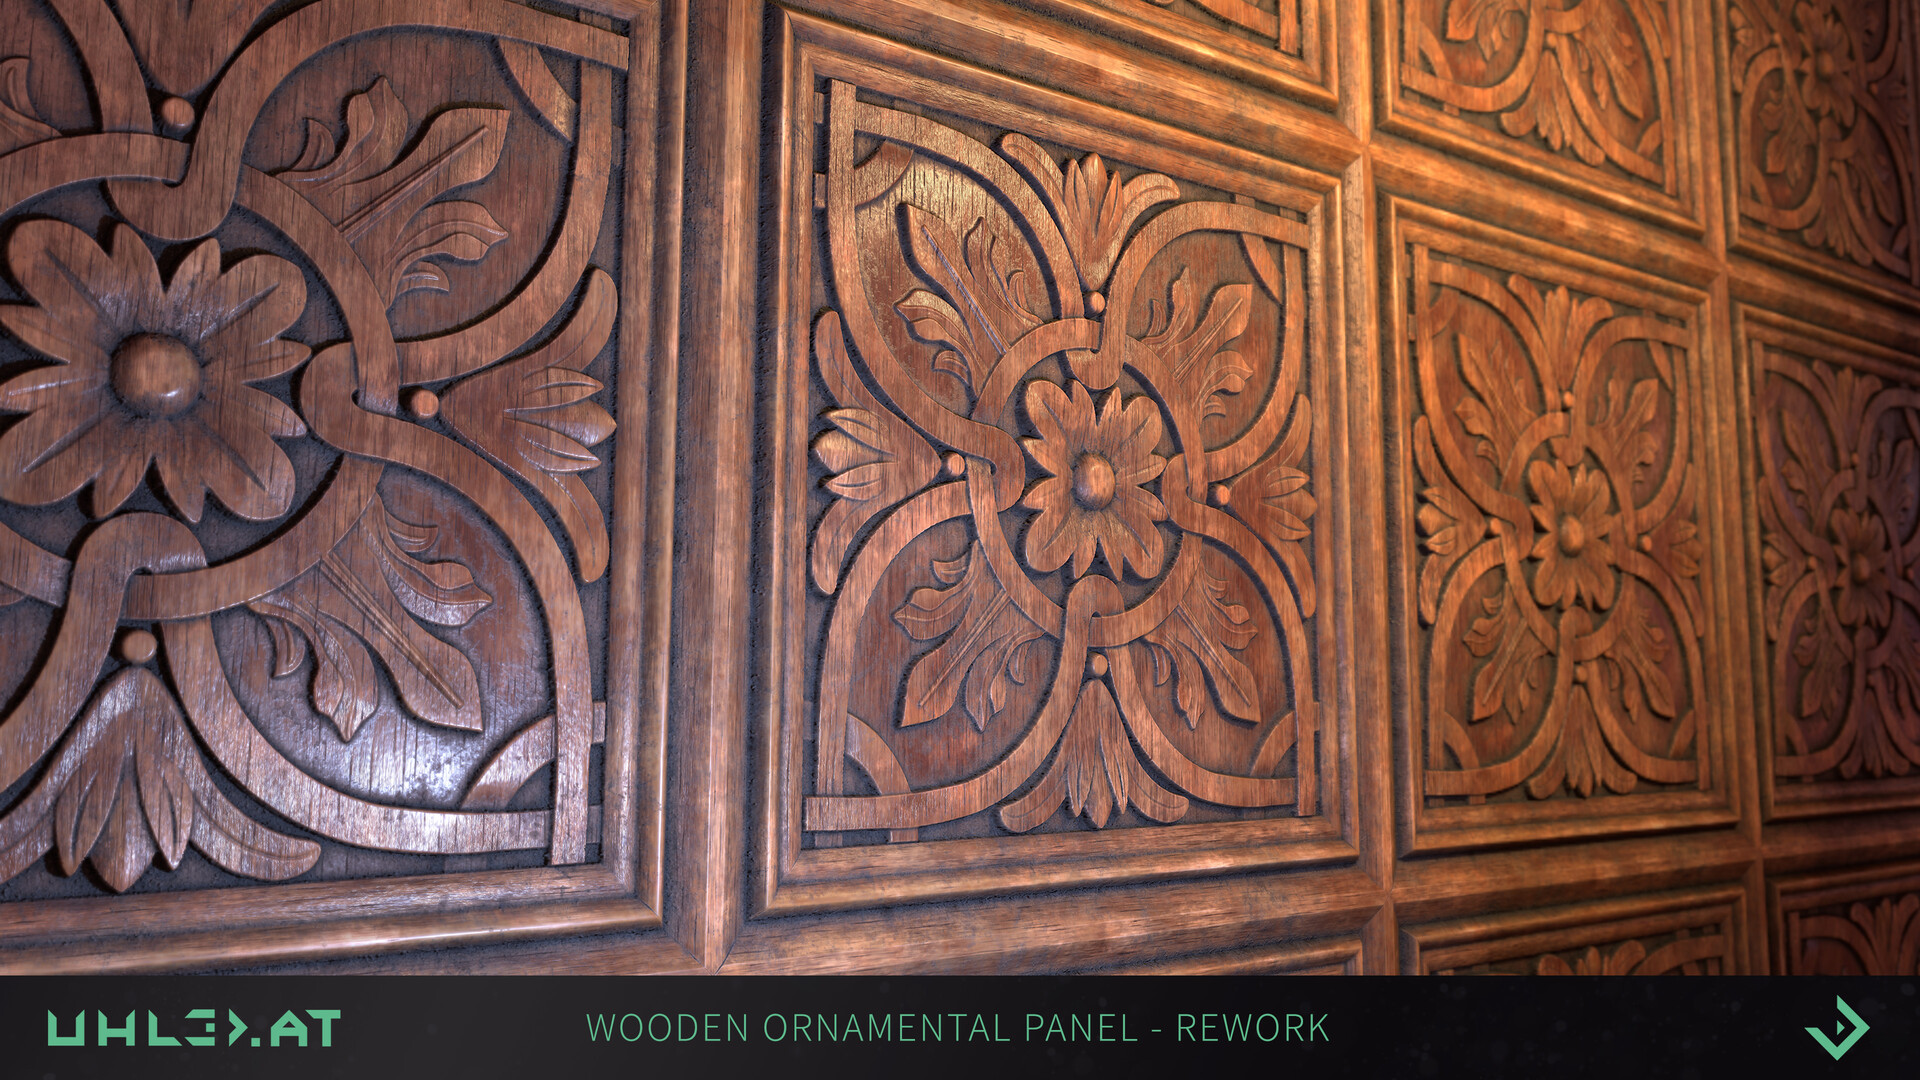 Dominik uhl wood panel ornament rework 04